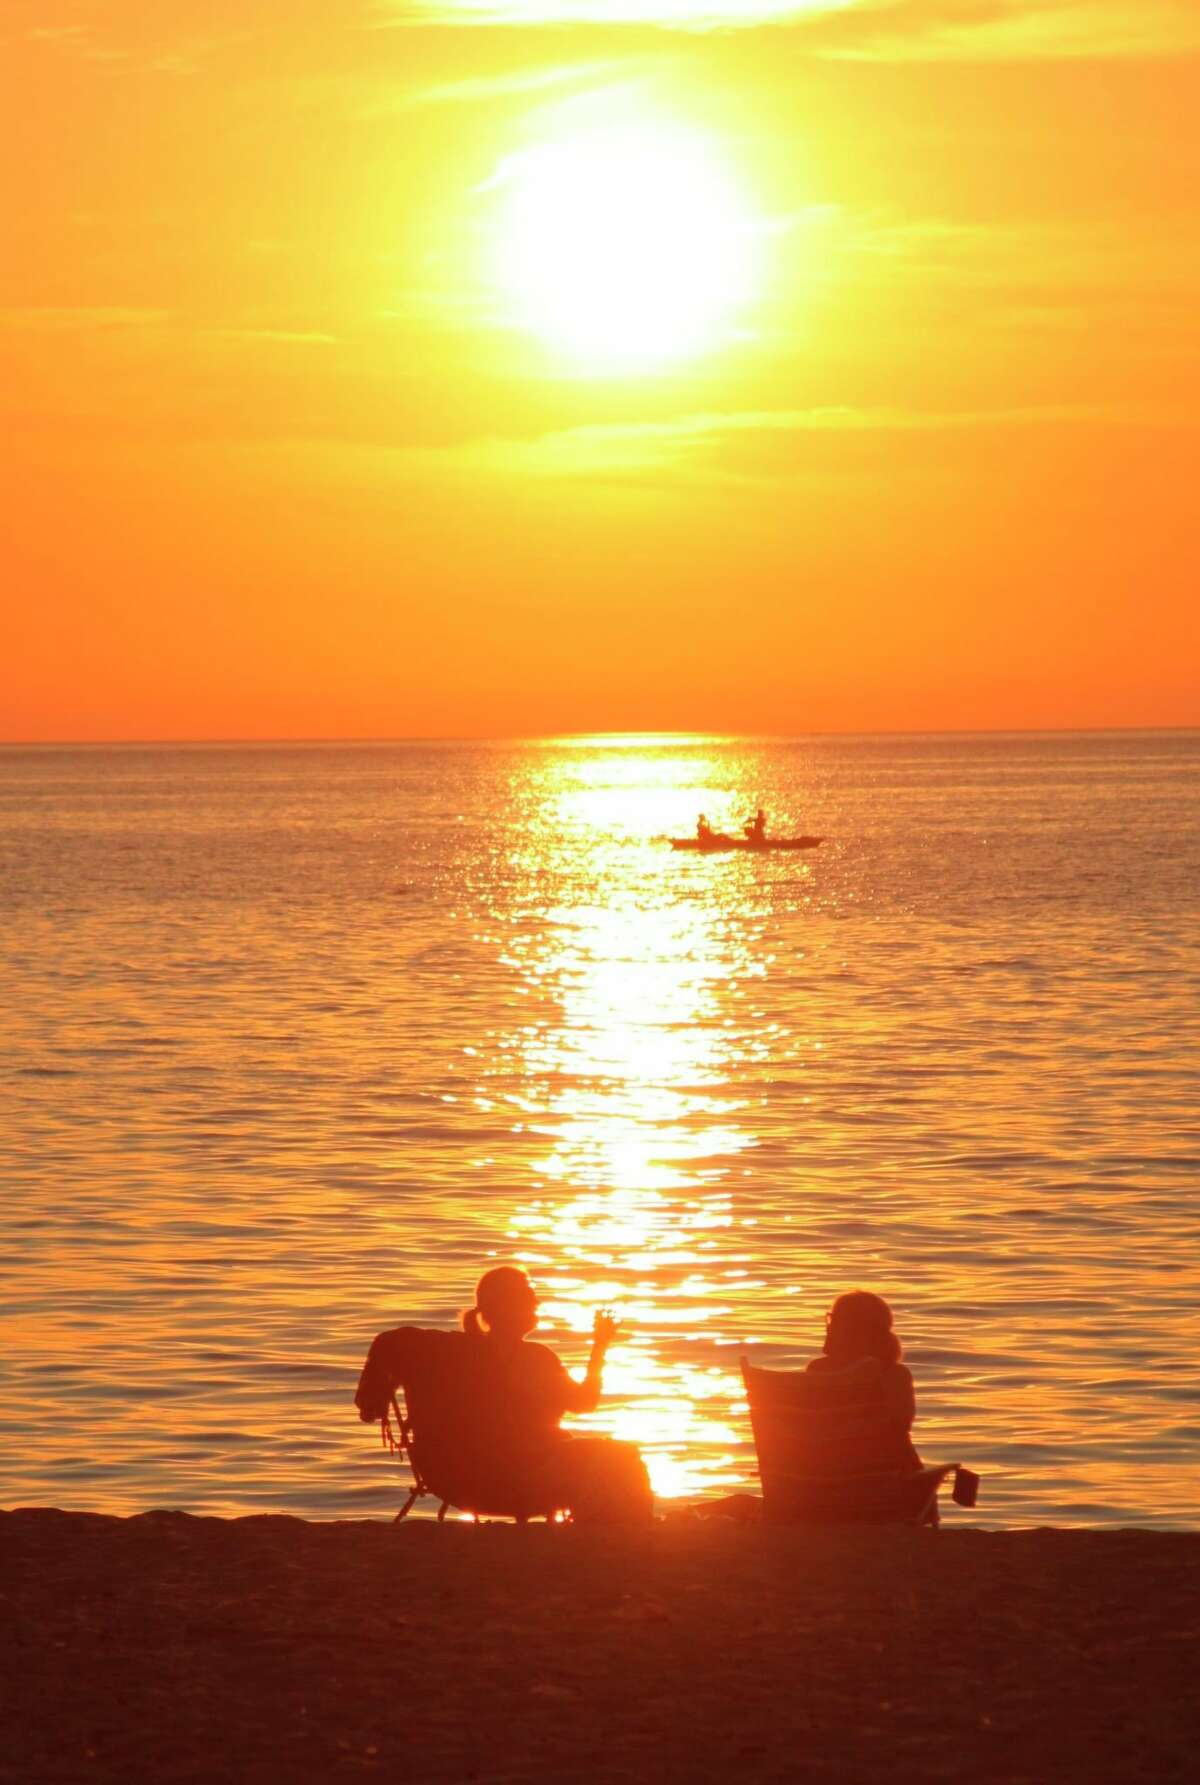 Taking in a sunset on the shores of Lake Michigan is a wonderful way to punctuate a summer night. (File photo)